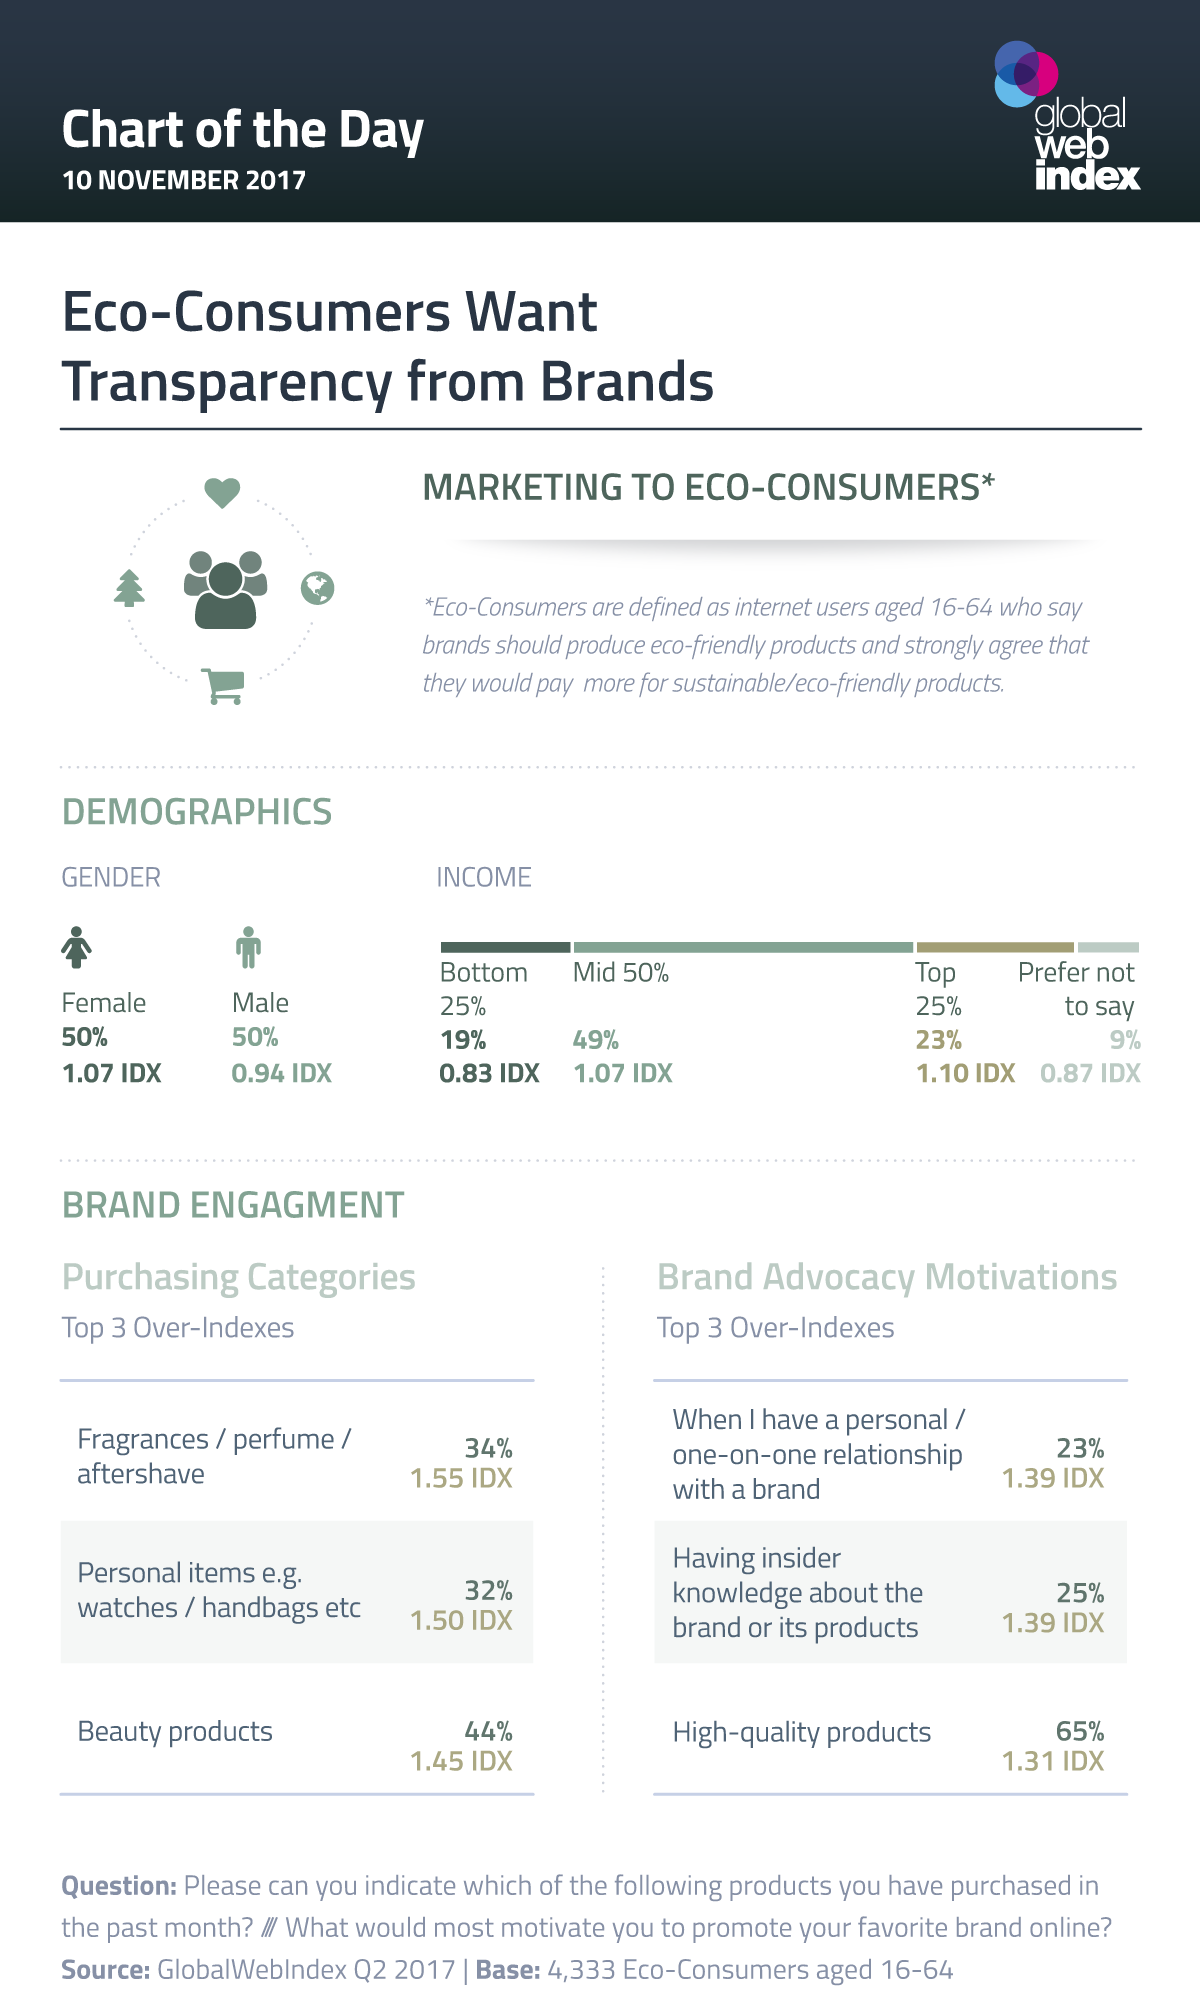 Eco-Consumers Want Transparency from Brands